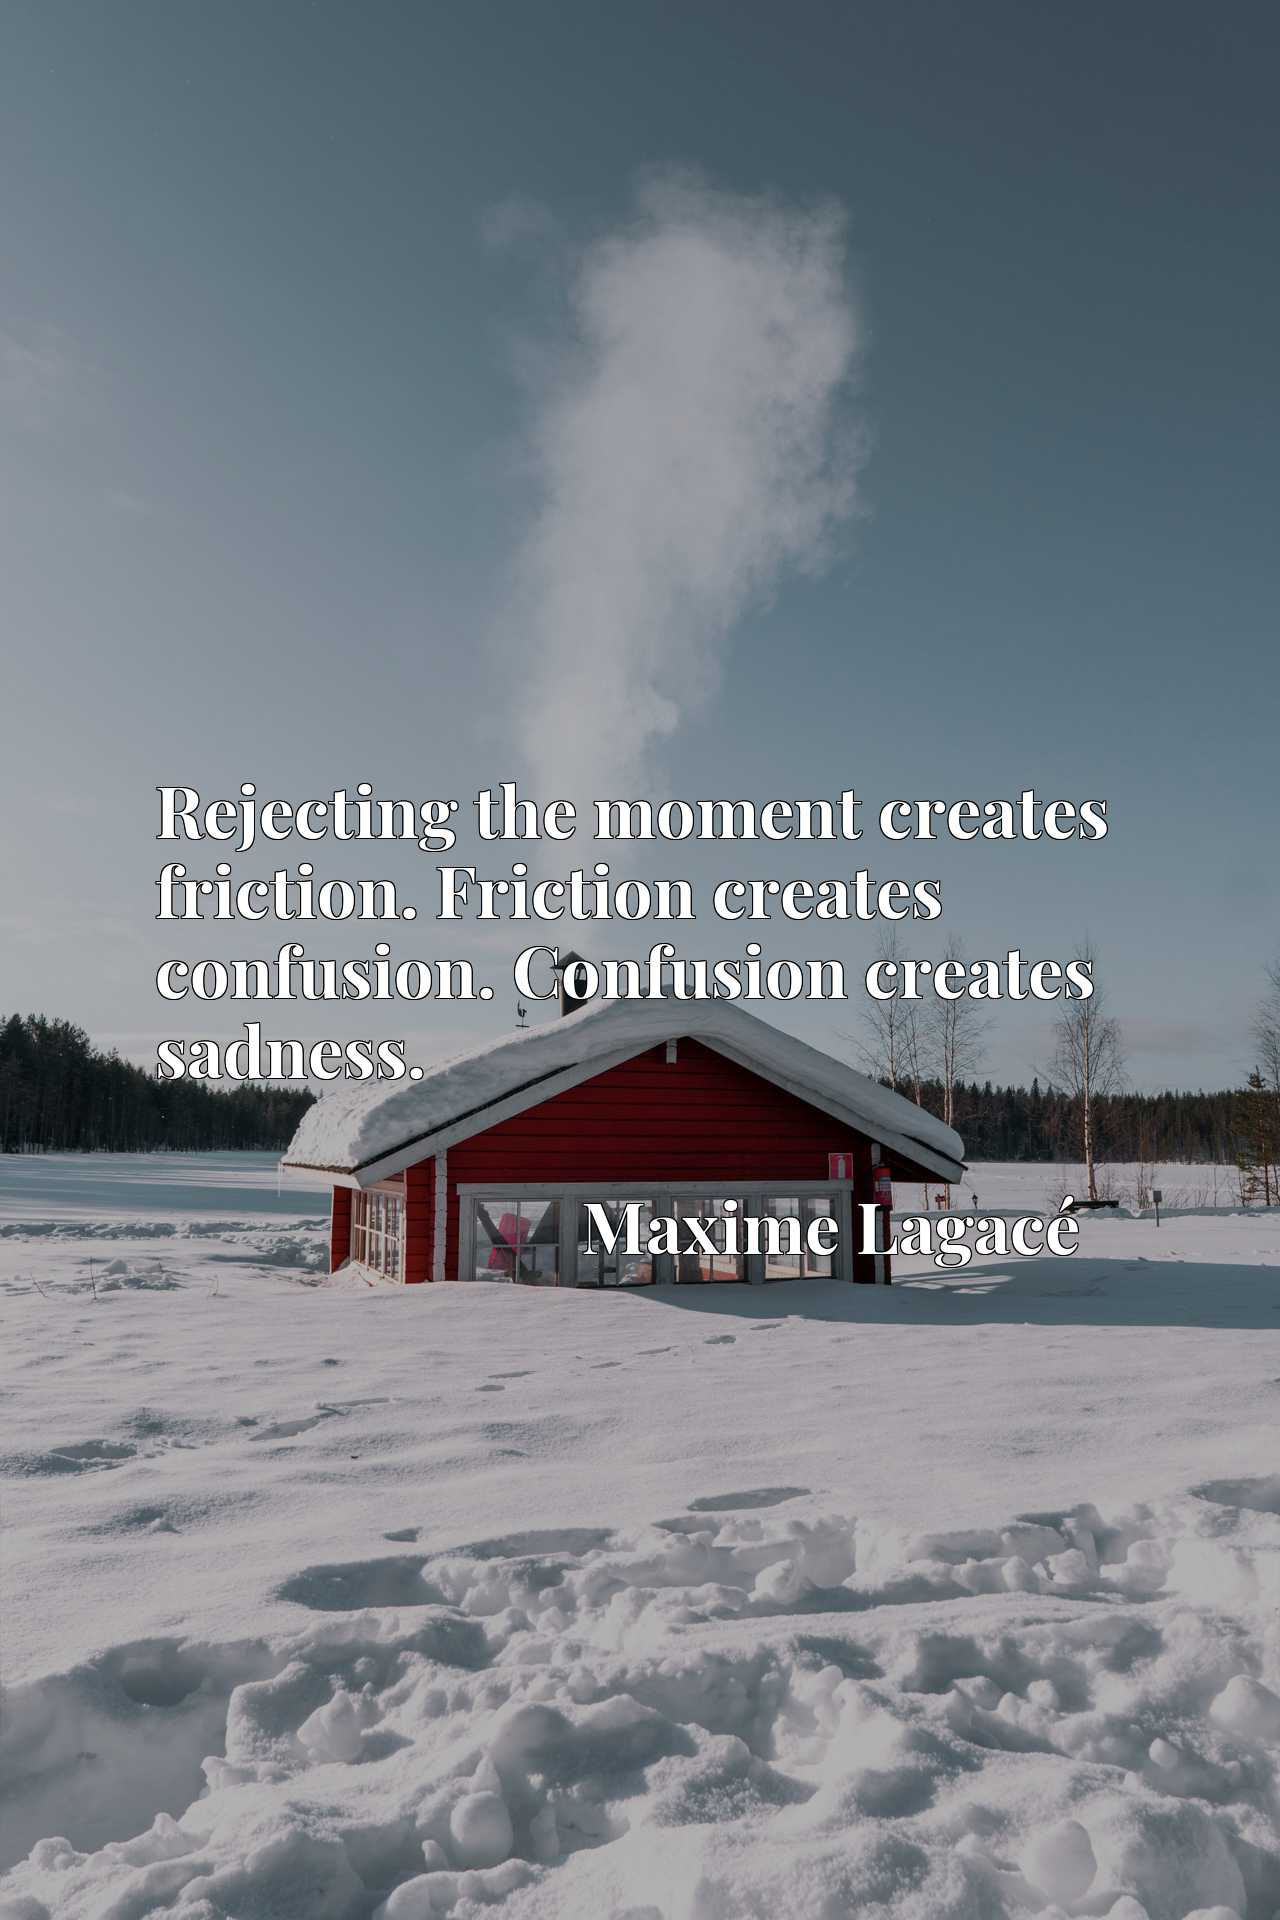 Rejecting the moment creates friction. Friction creates confusion. Confusion creates sadness.